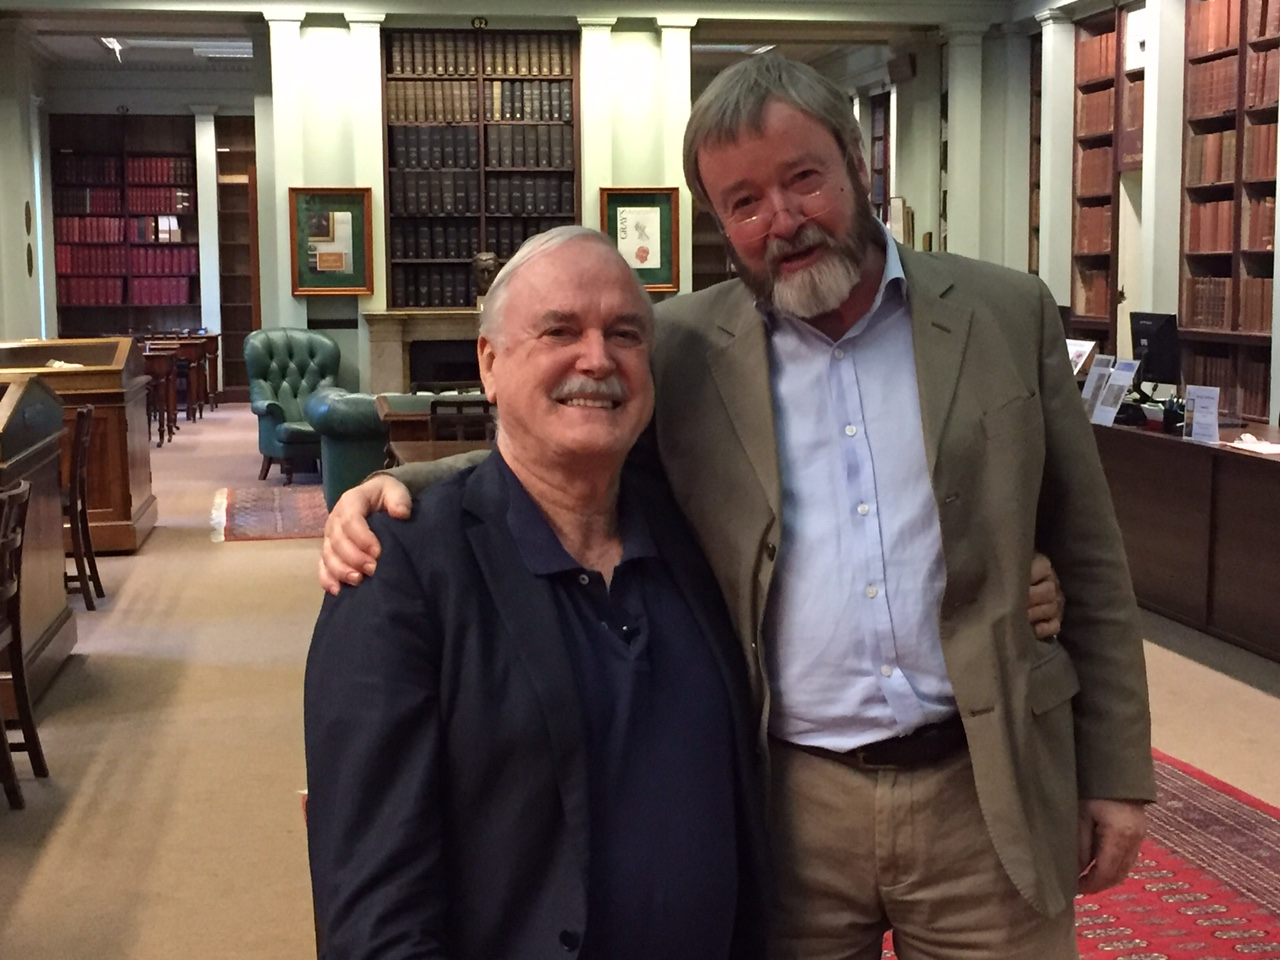 John Cleese and Iain McGilchrist